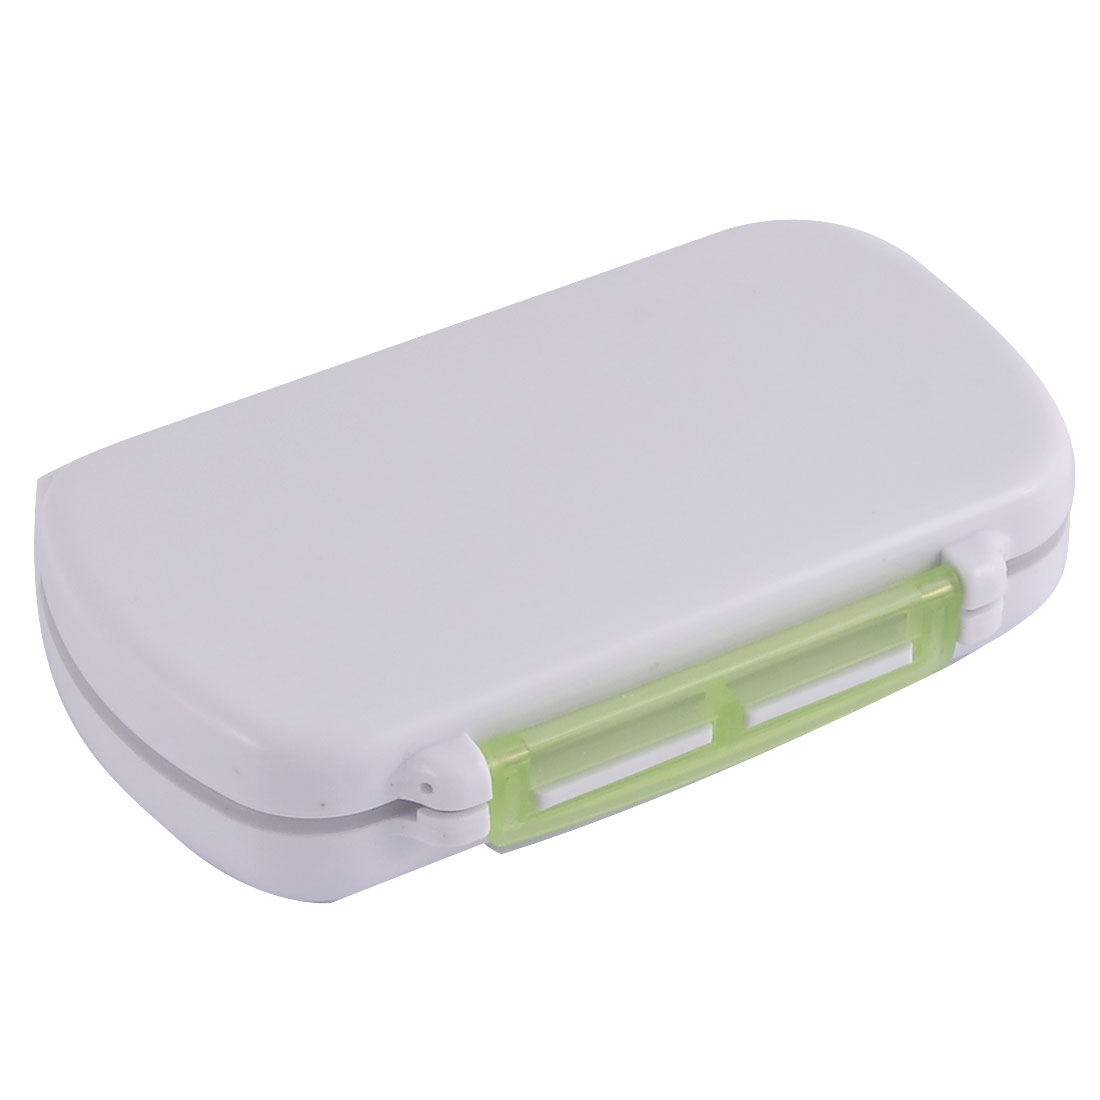 Plastic Square Design Portable Pocket Pills Coins Storage Box Case Clear Green